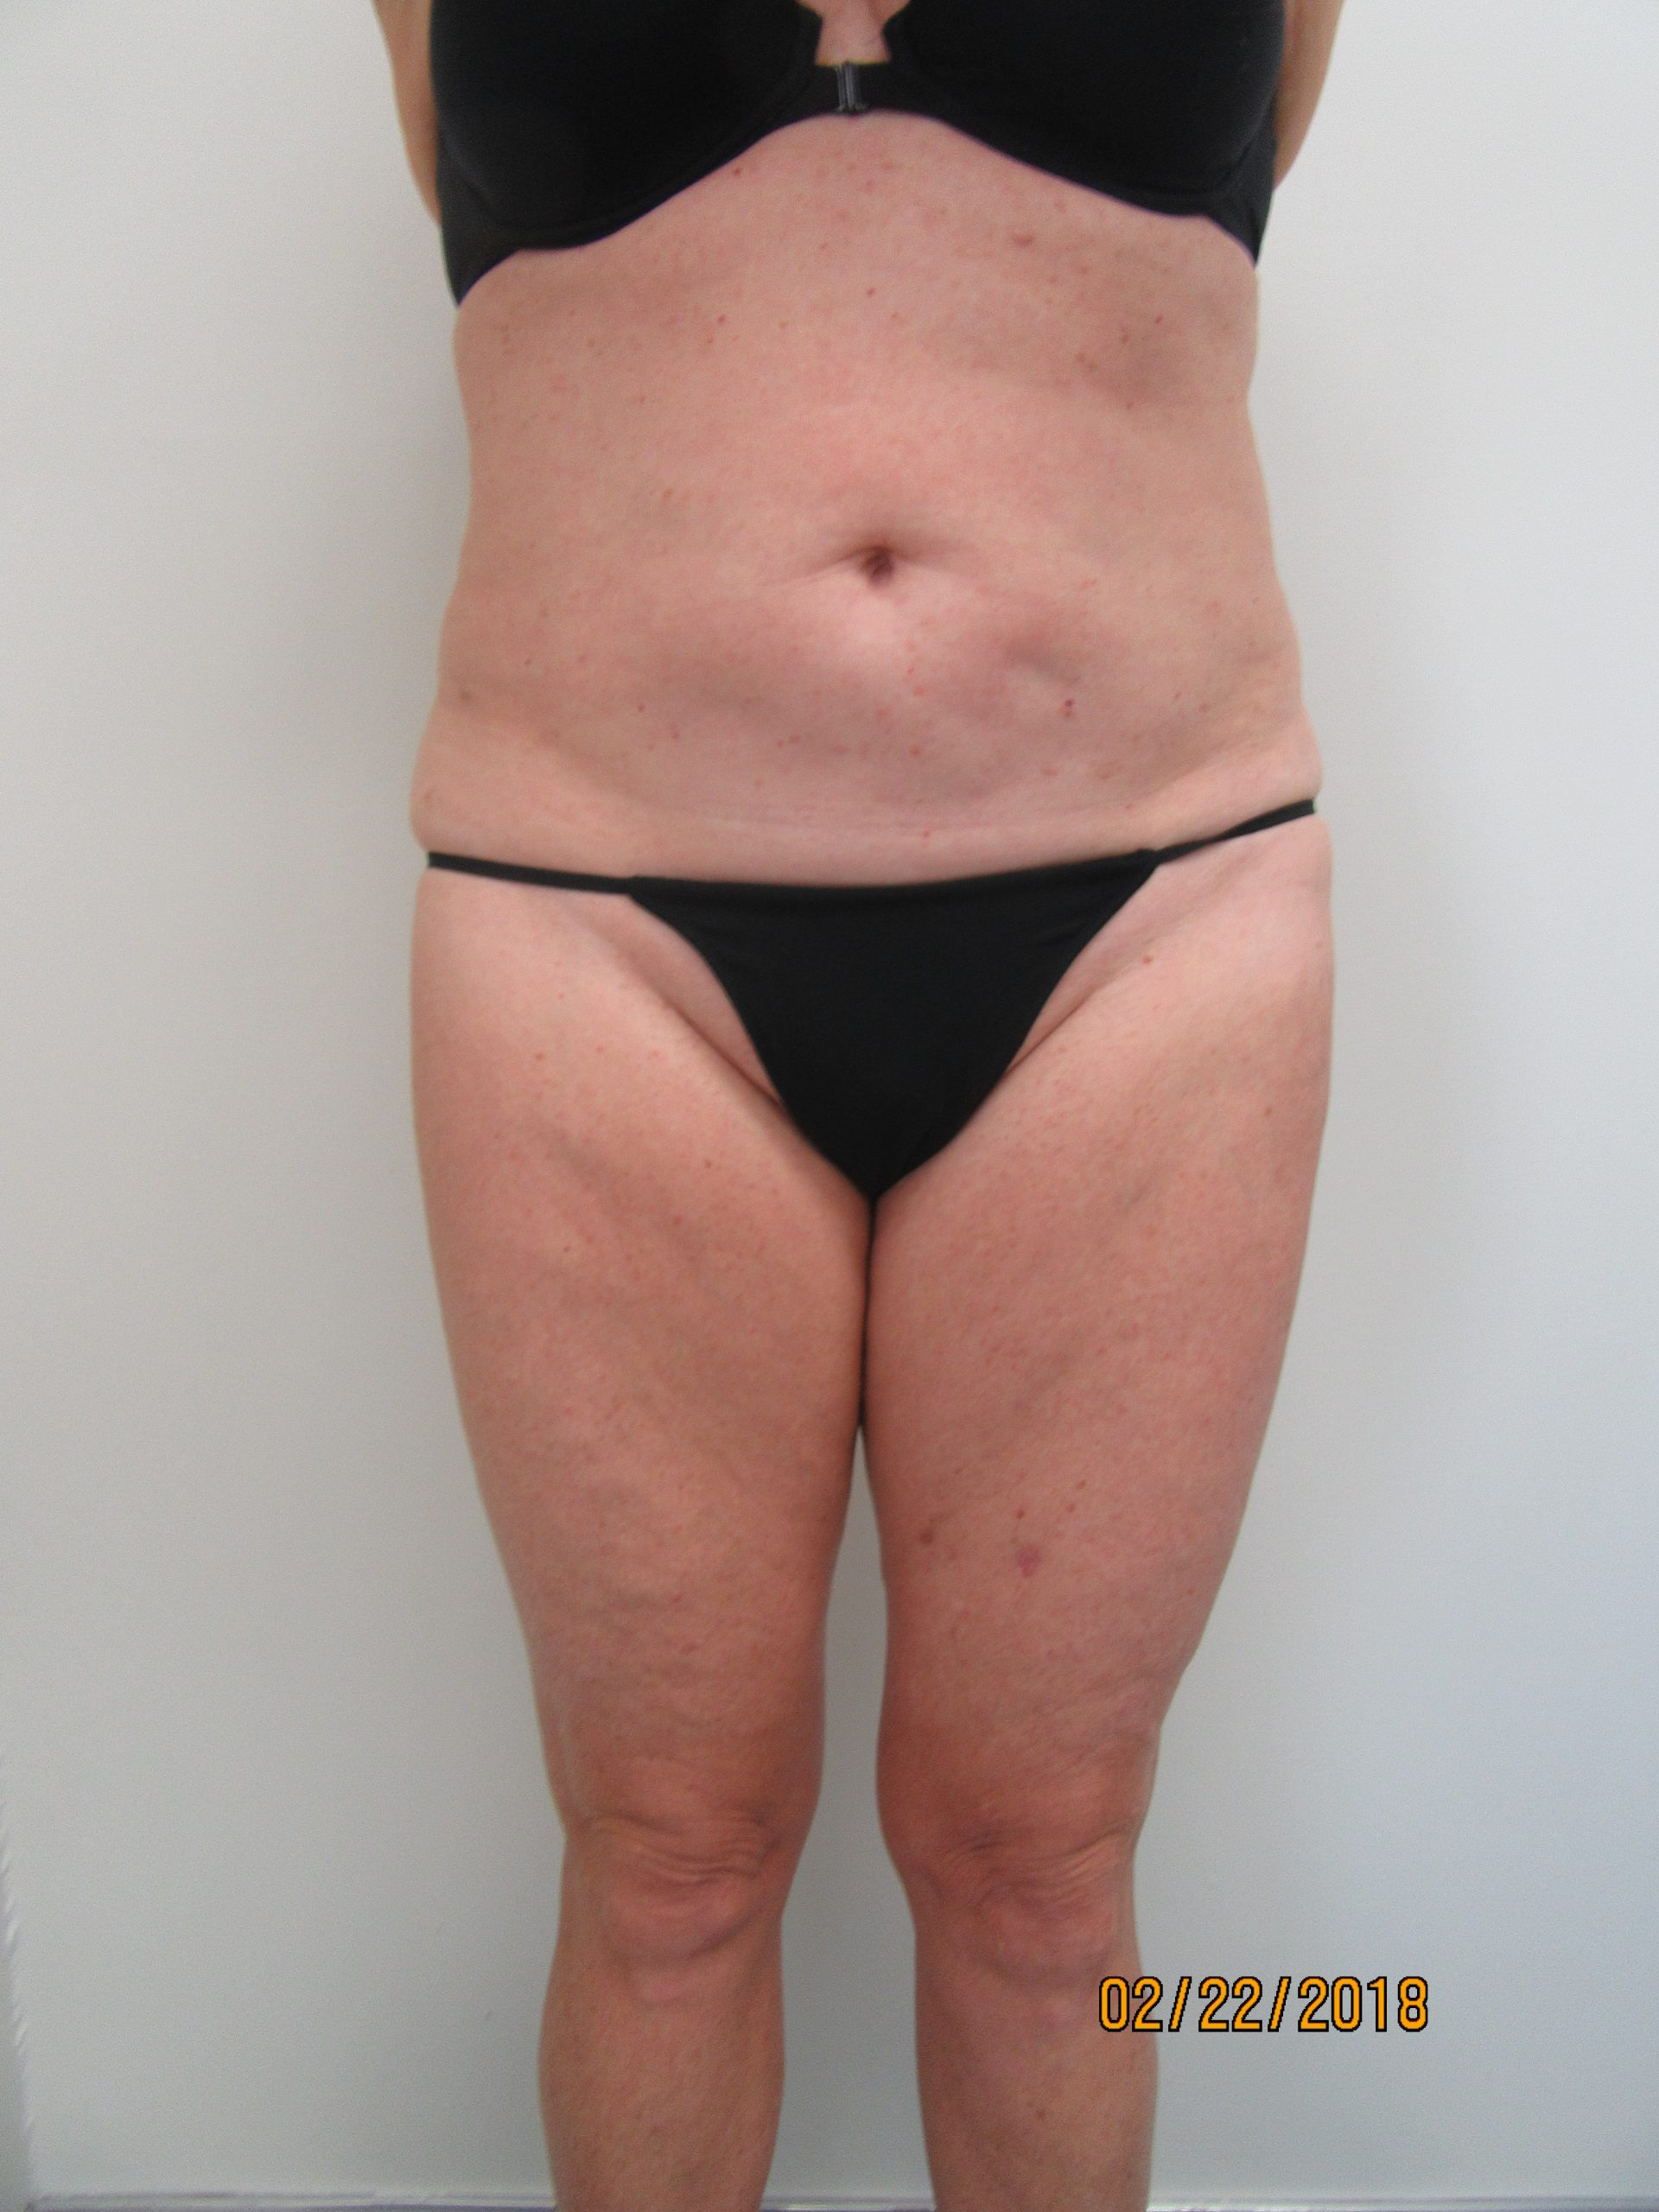 Case 0112 510827, Lipo Abd, IT, IK – before